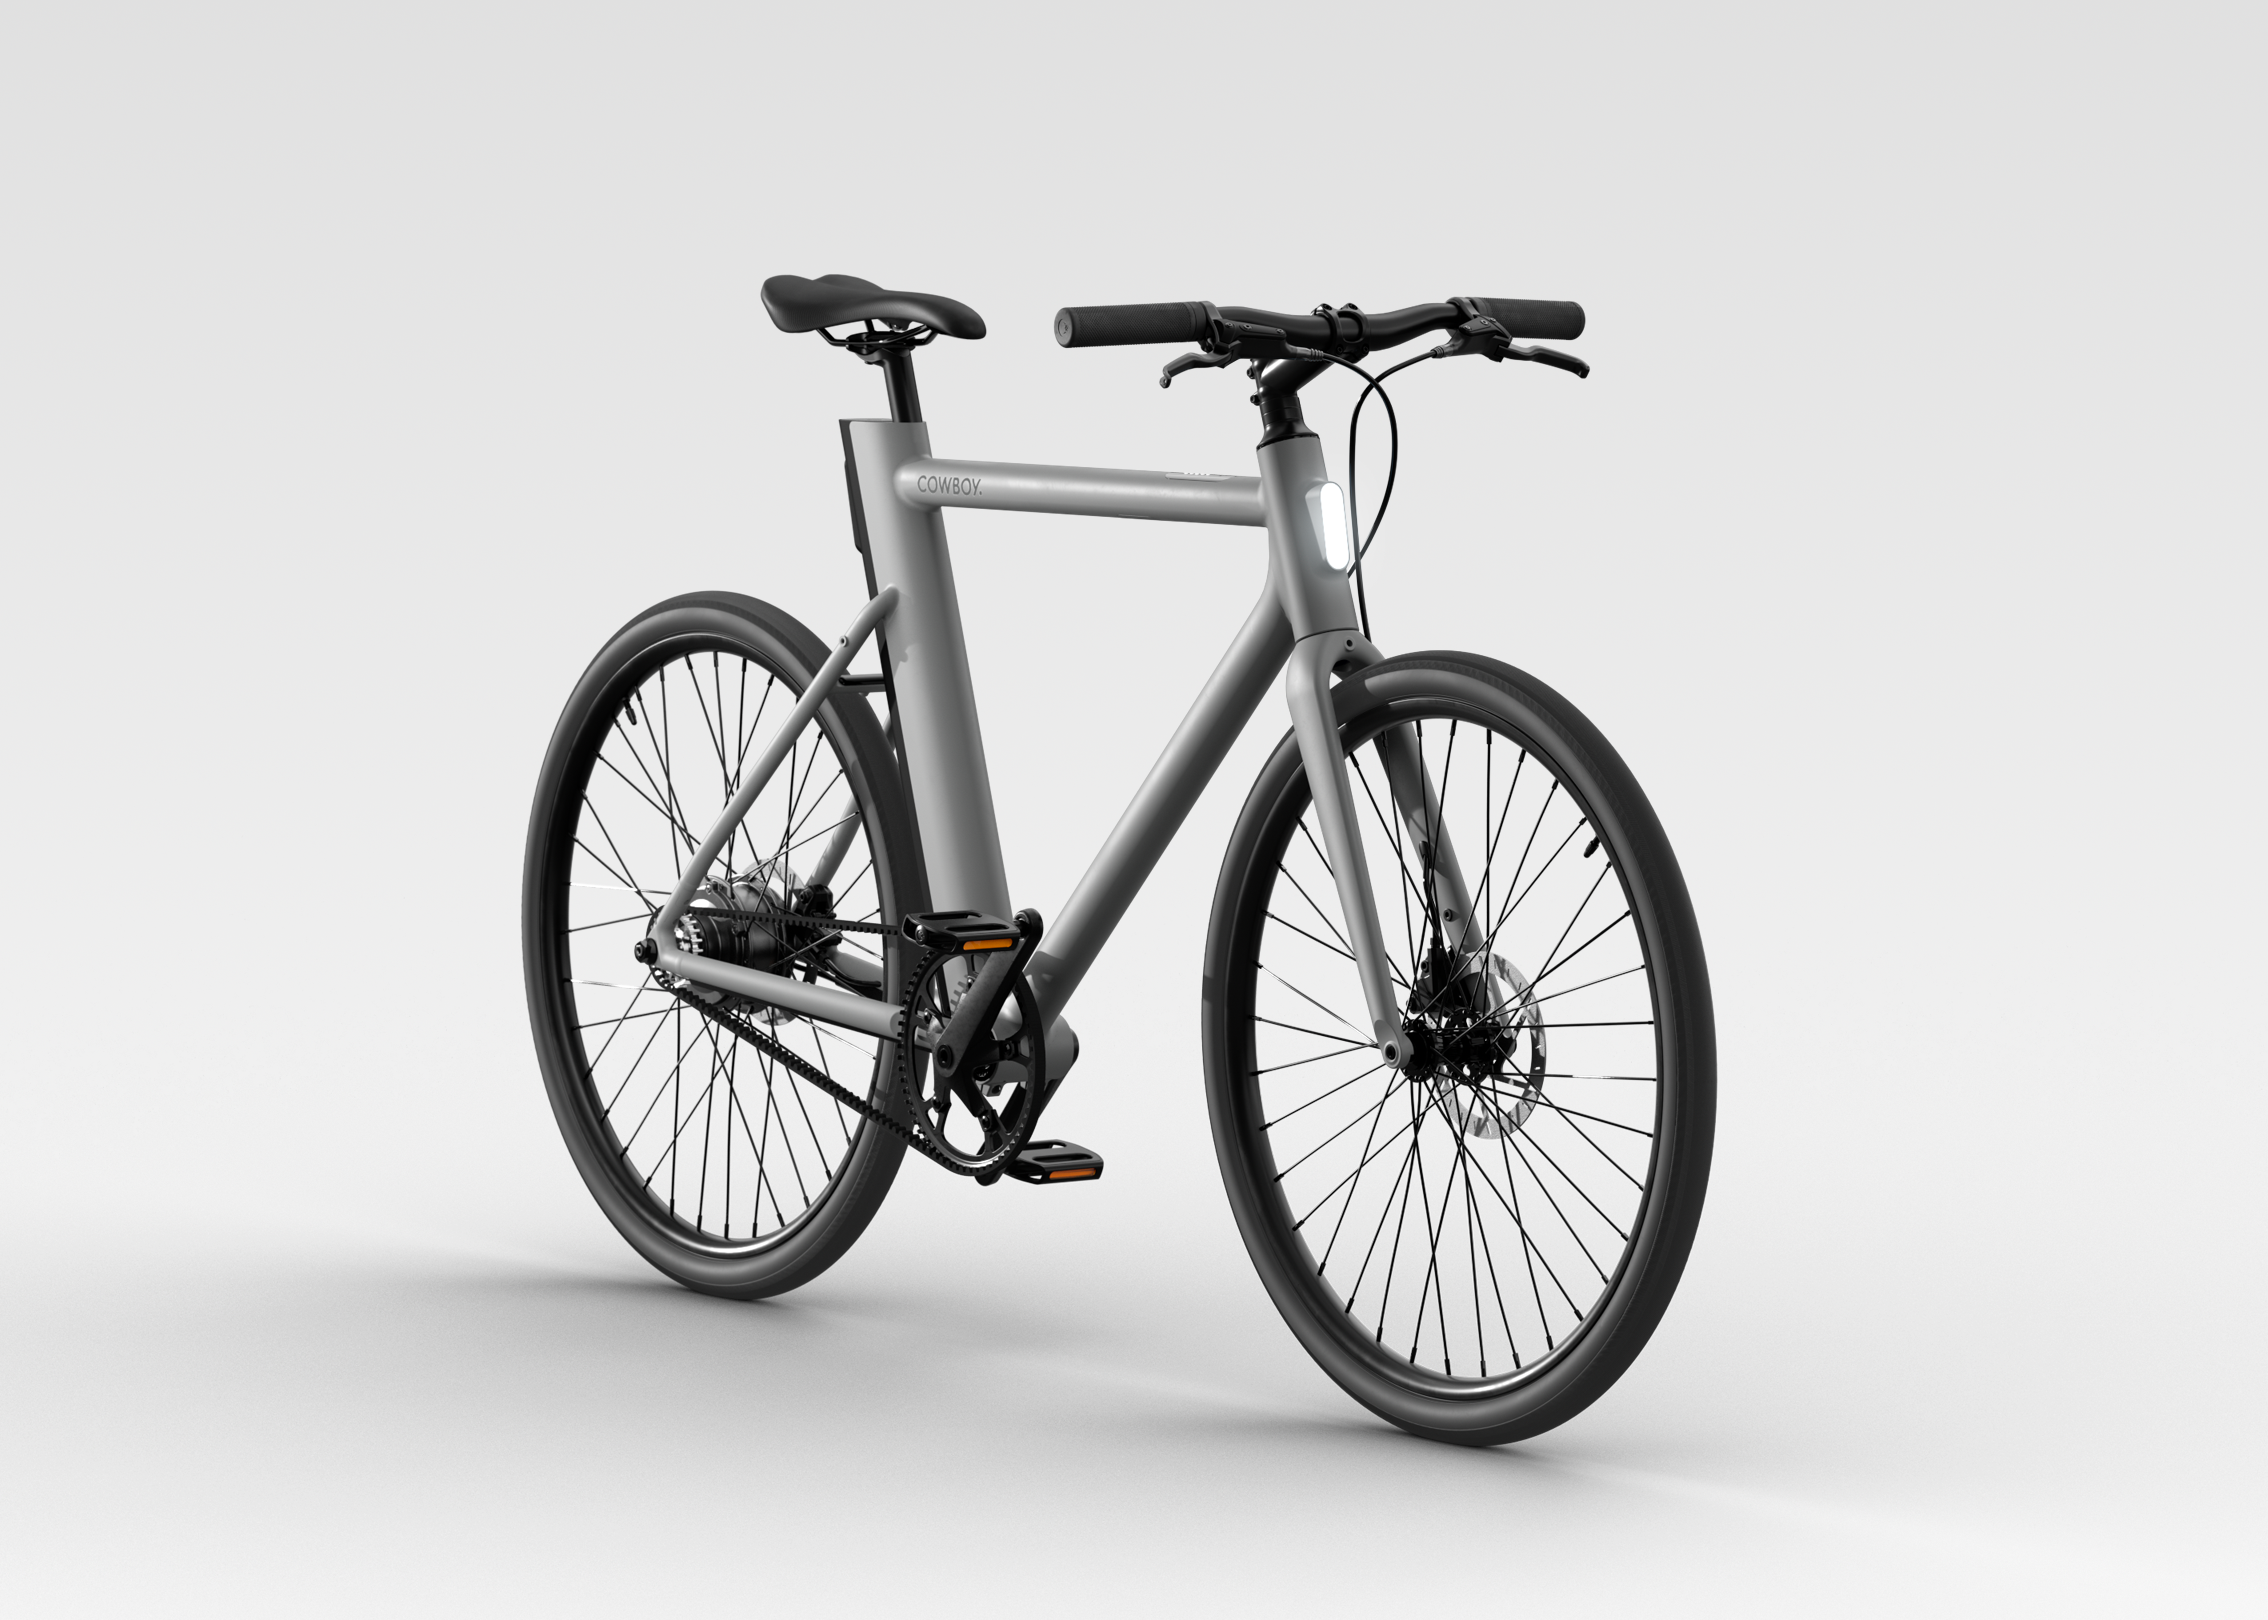 Cowboy releases updated e-bike with new carbon belt 2